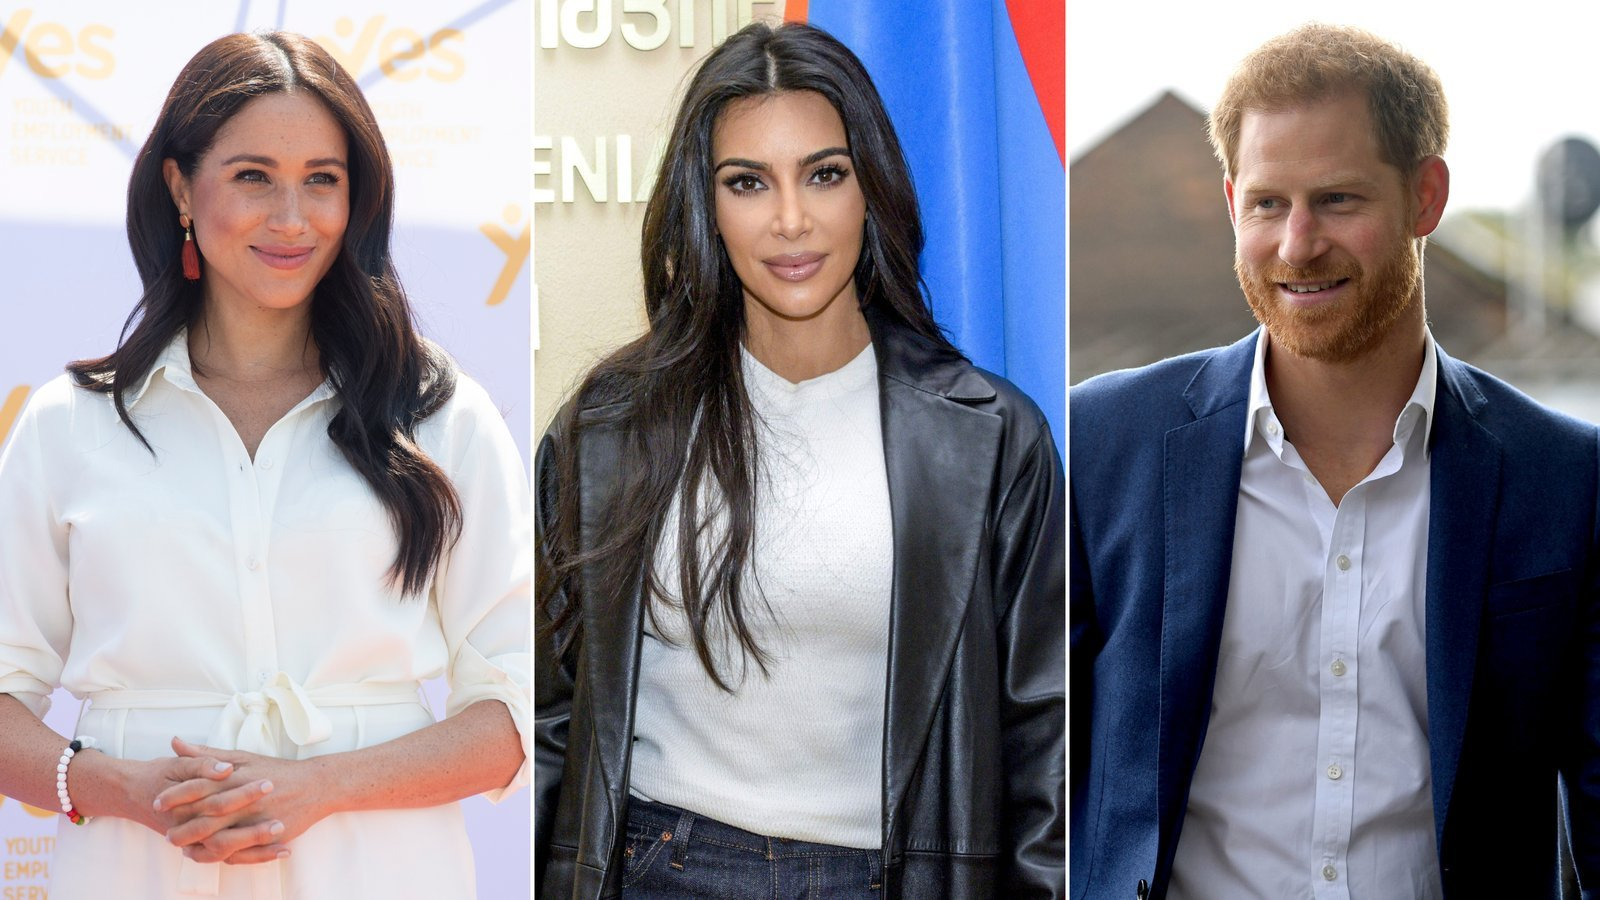 Kim Kardashian defends Meghan and Harry over press treatment